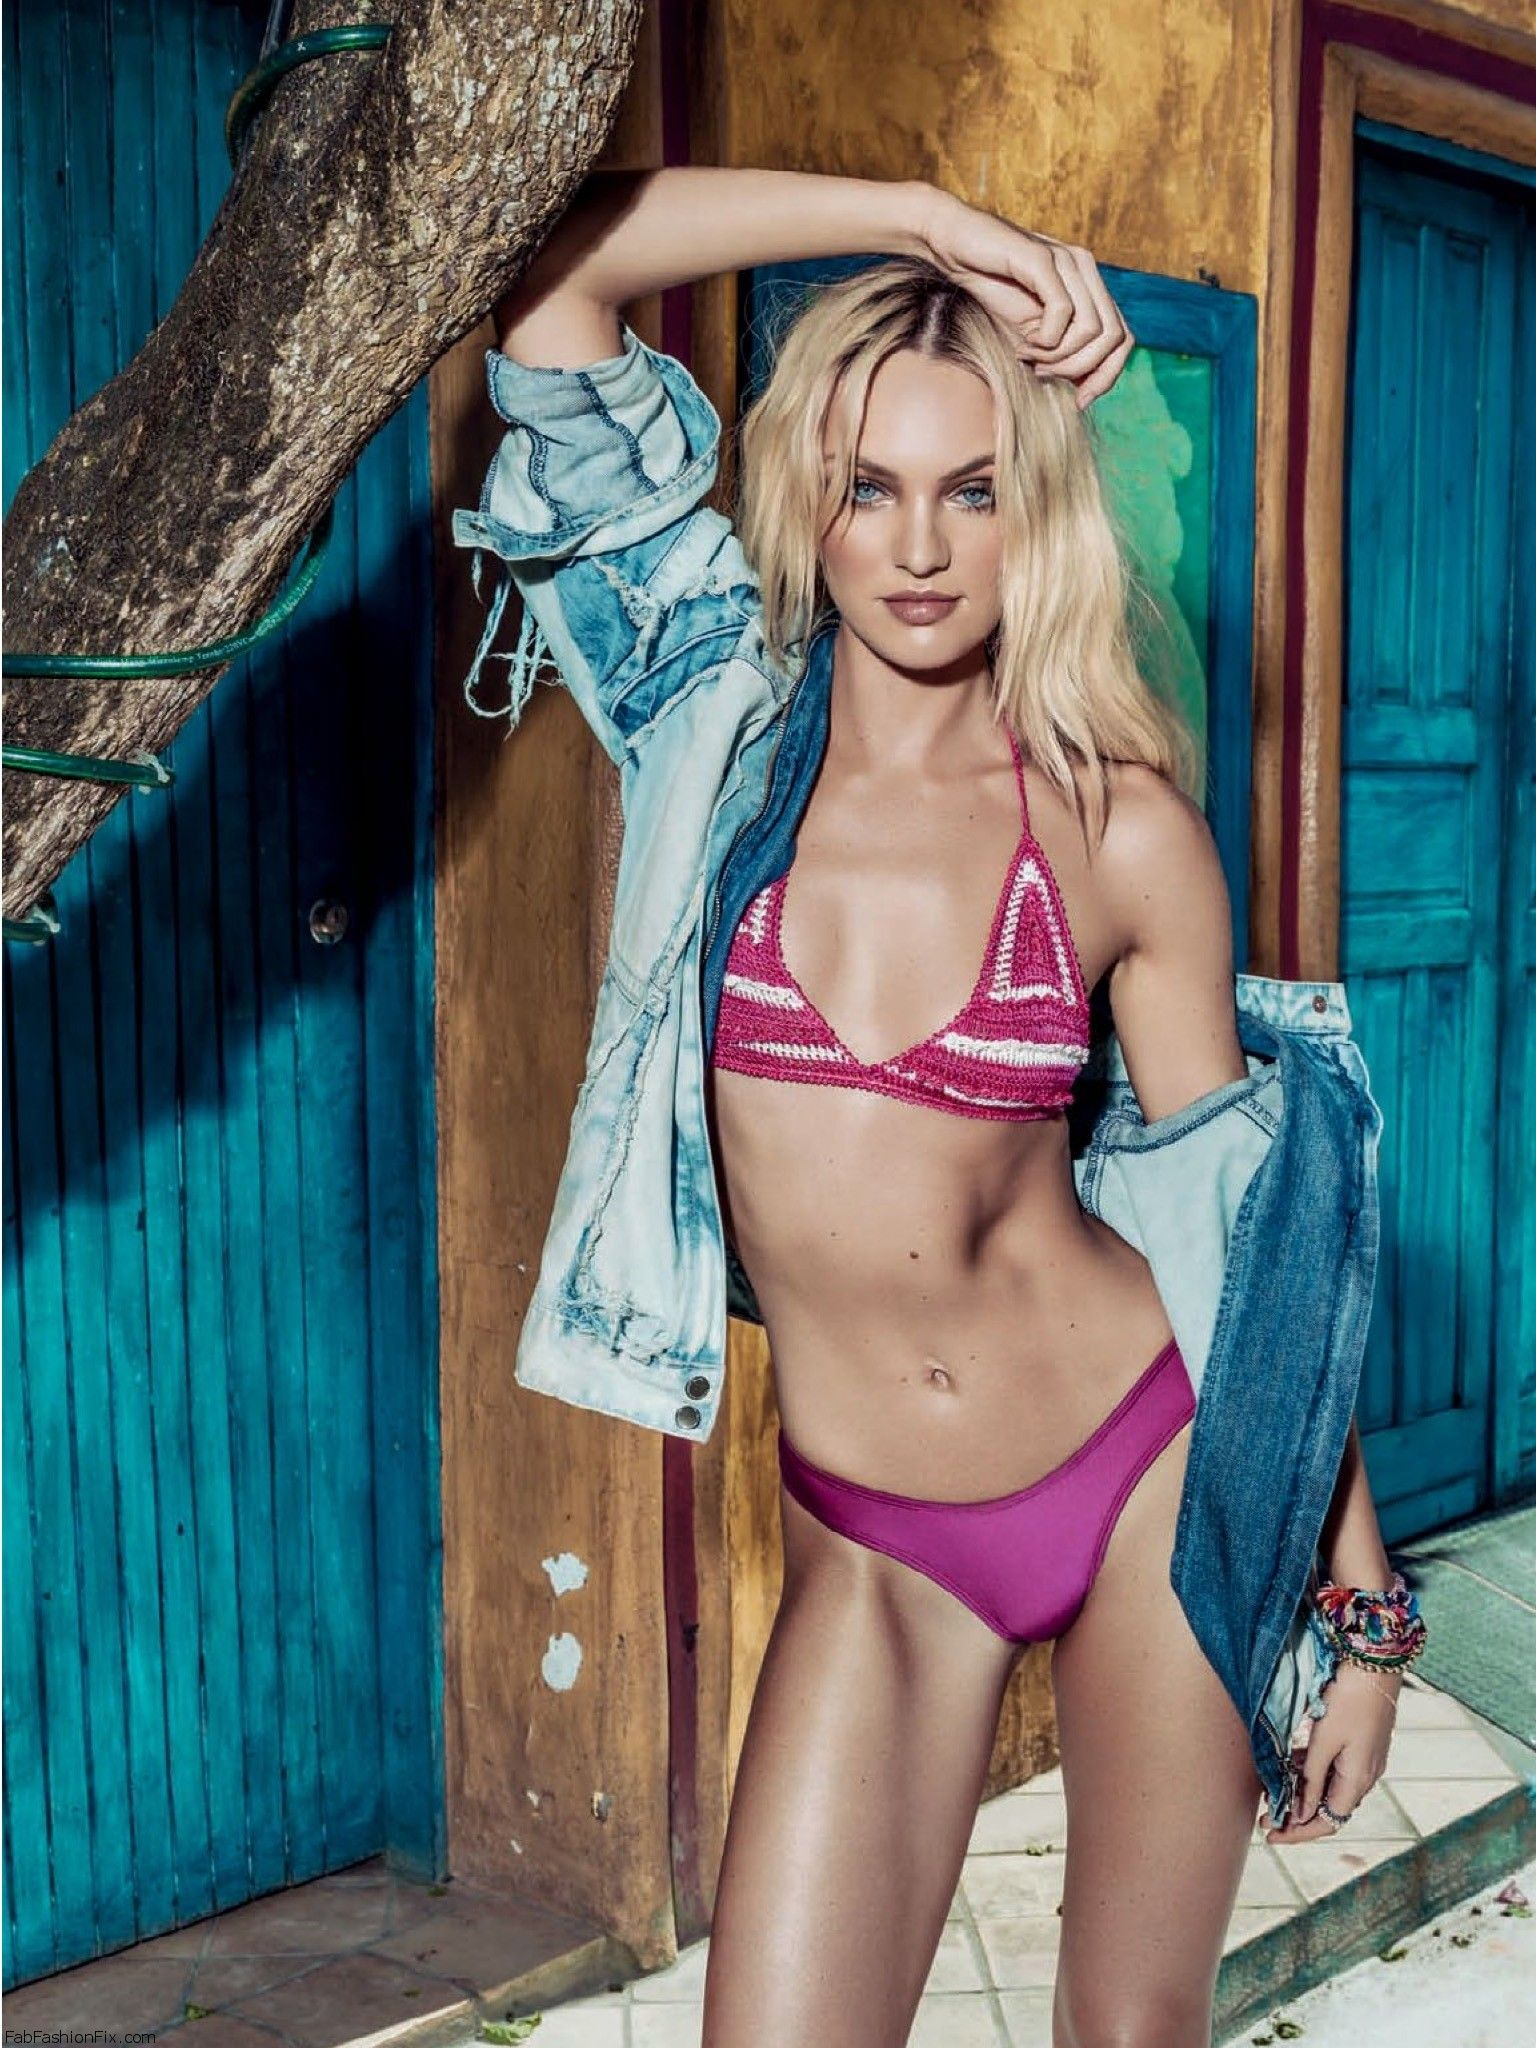 Fashion_Scans_Remastered.Candice_Swanepoel.VOGUE_BRAZIL.January_2014.Scanned_by_VampireHorde.HQ.20